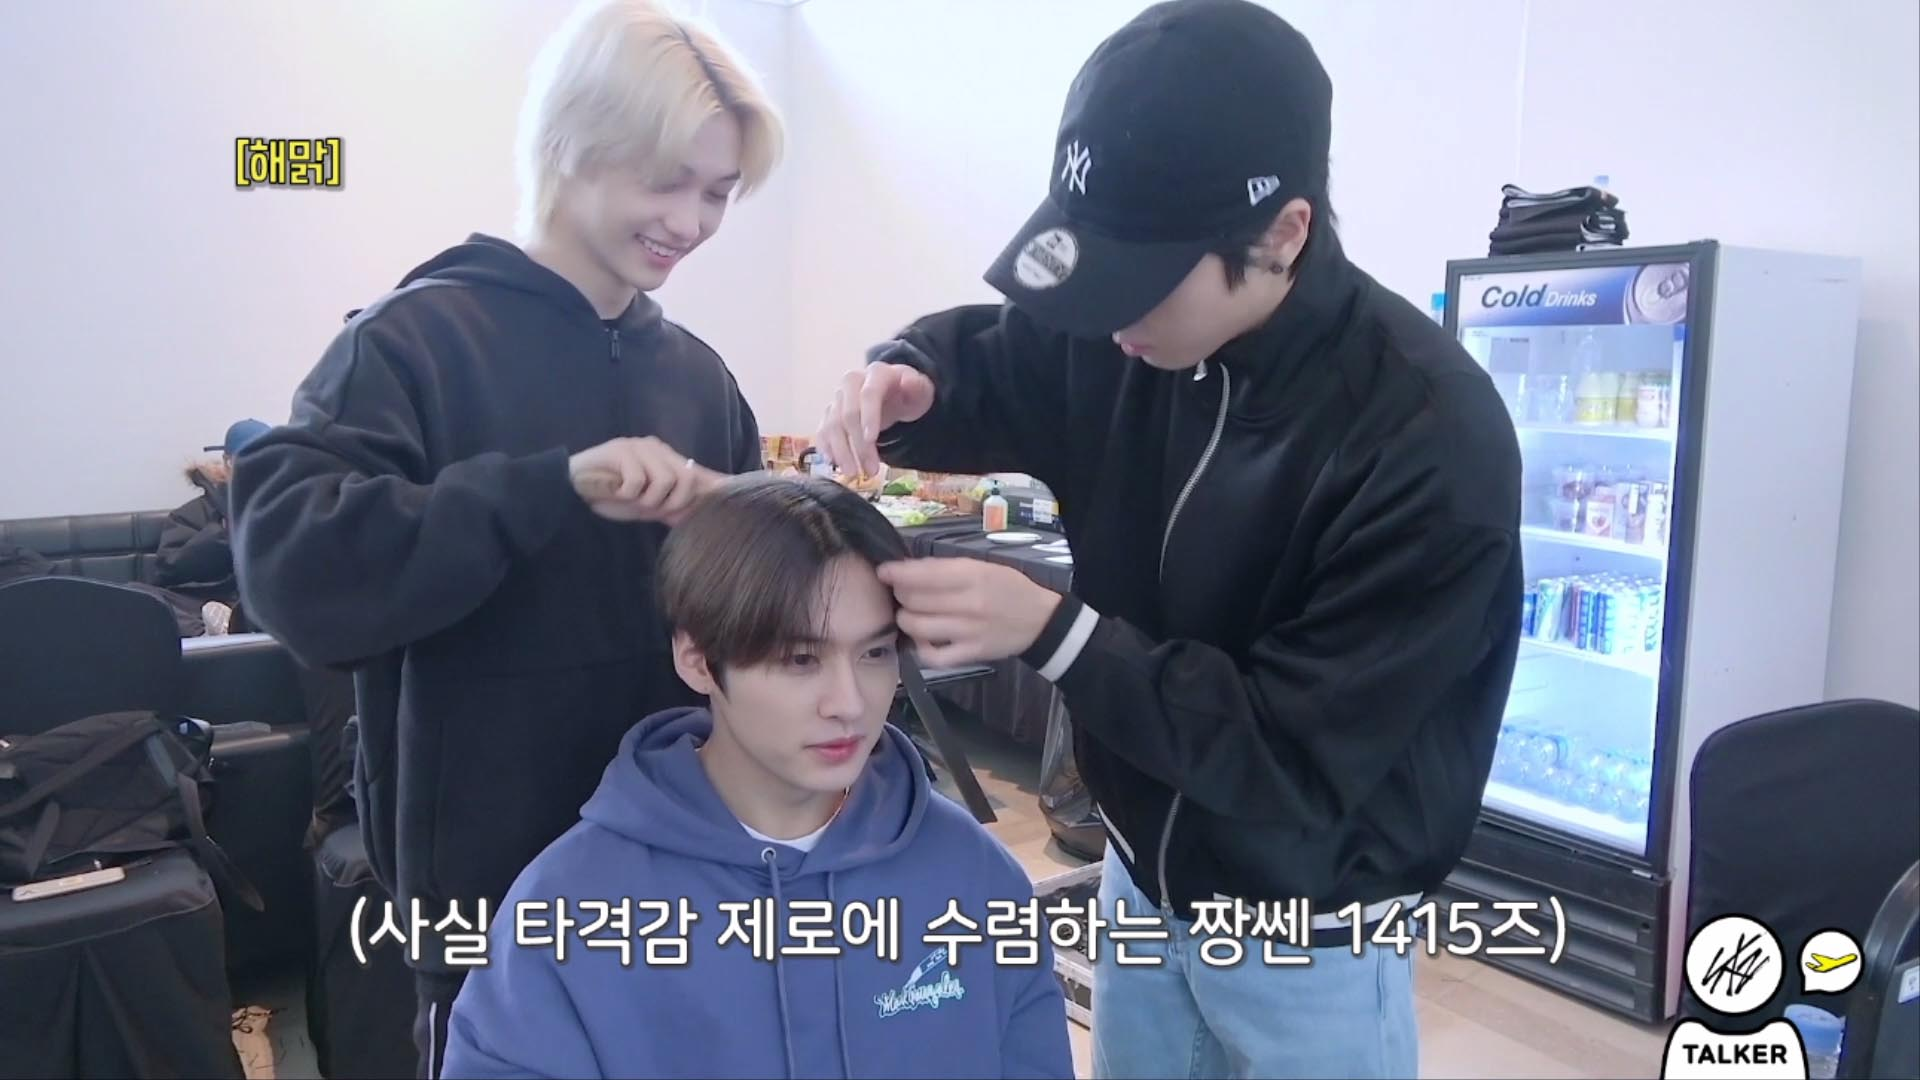 [Stray Kids(스트레이 키즈) : SKZ-TALKER GO! Season 2(슼즈토커 고! 시즌 2)] Ep.03 'Unlock : GO LIVE IN LIFE'